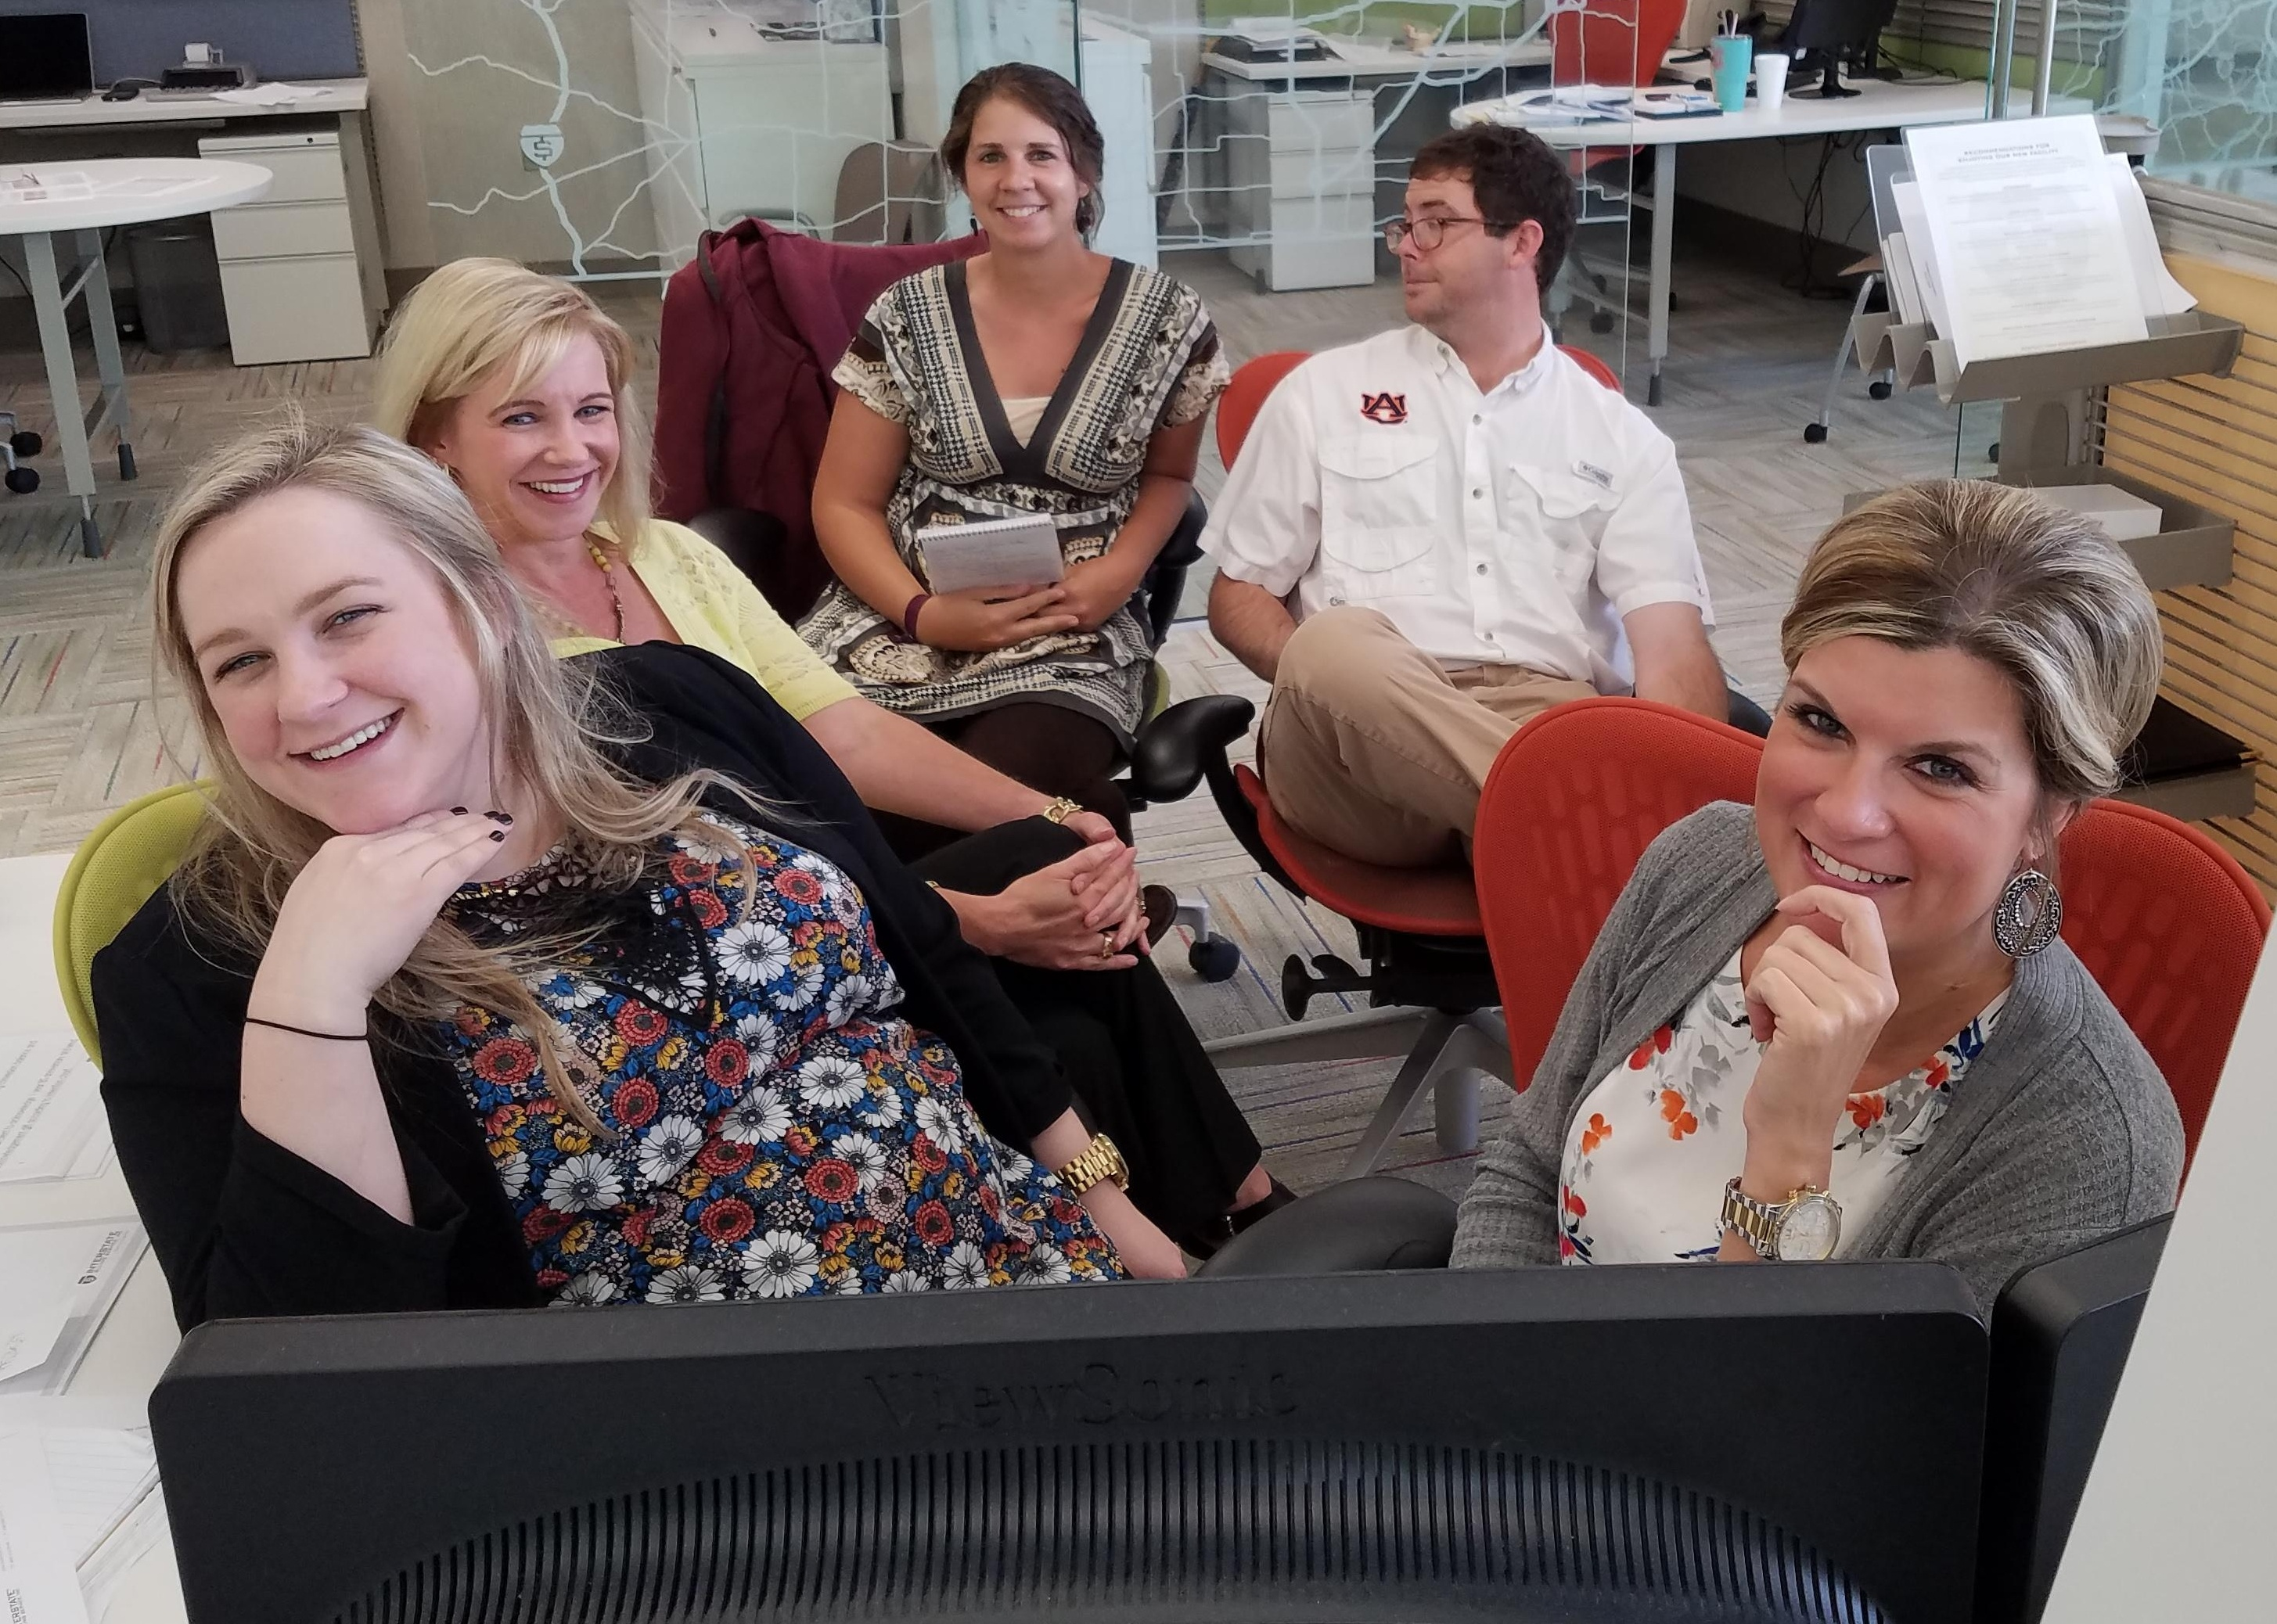 IBS Client Relations team members gathered at computer workstation